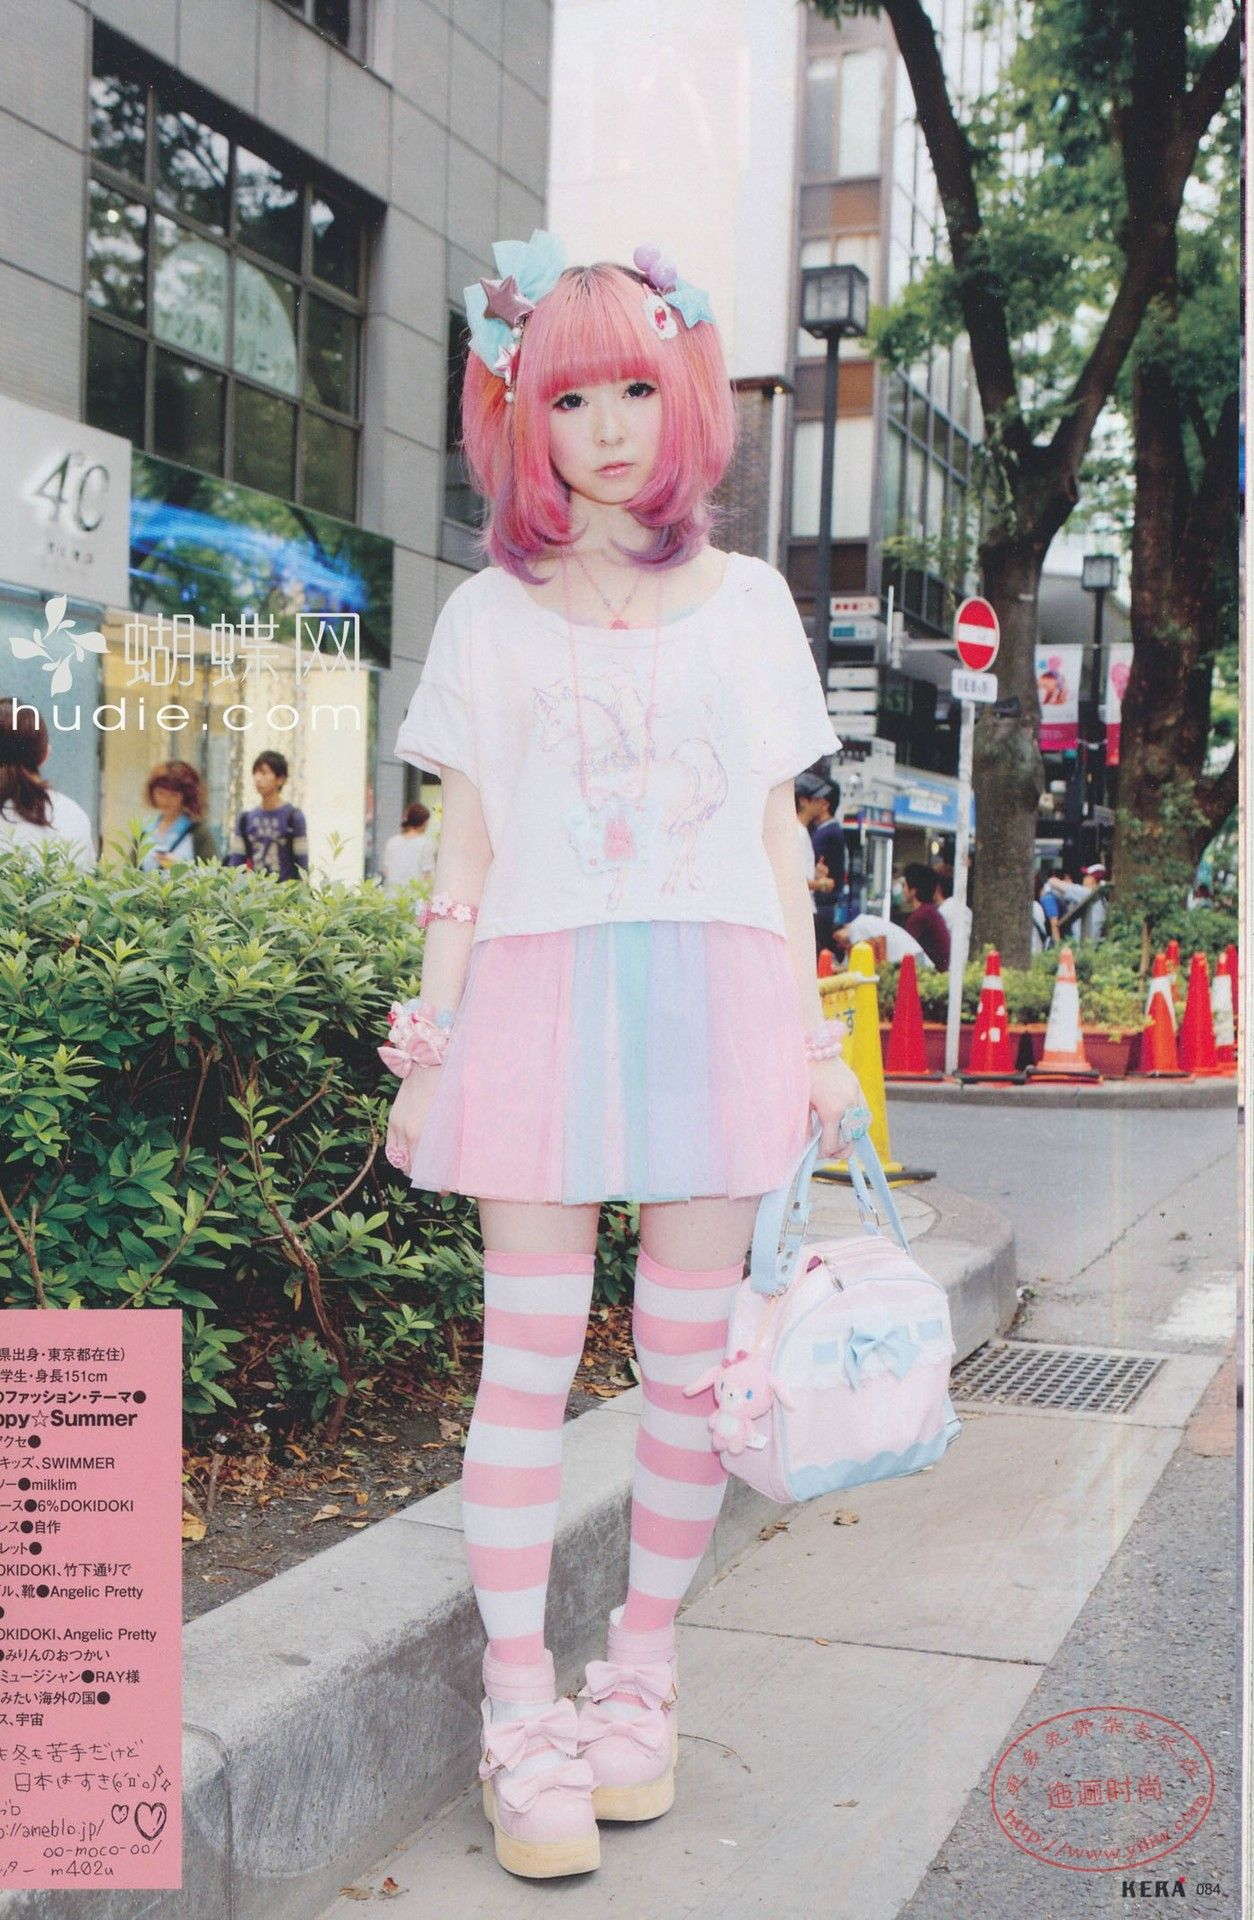 fairy kei I believe. Love the hair, tights, bag, skirt, cropped long shirt, everything. Cute